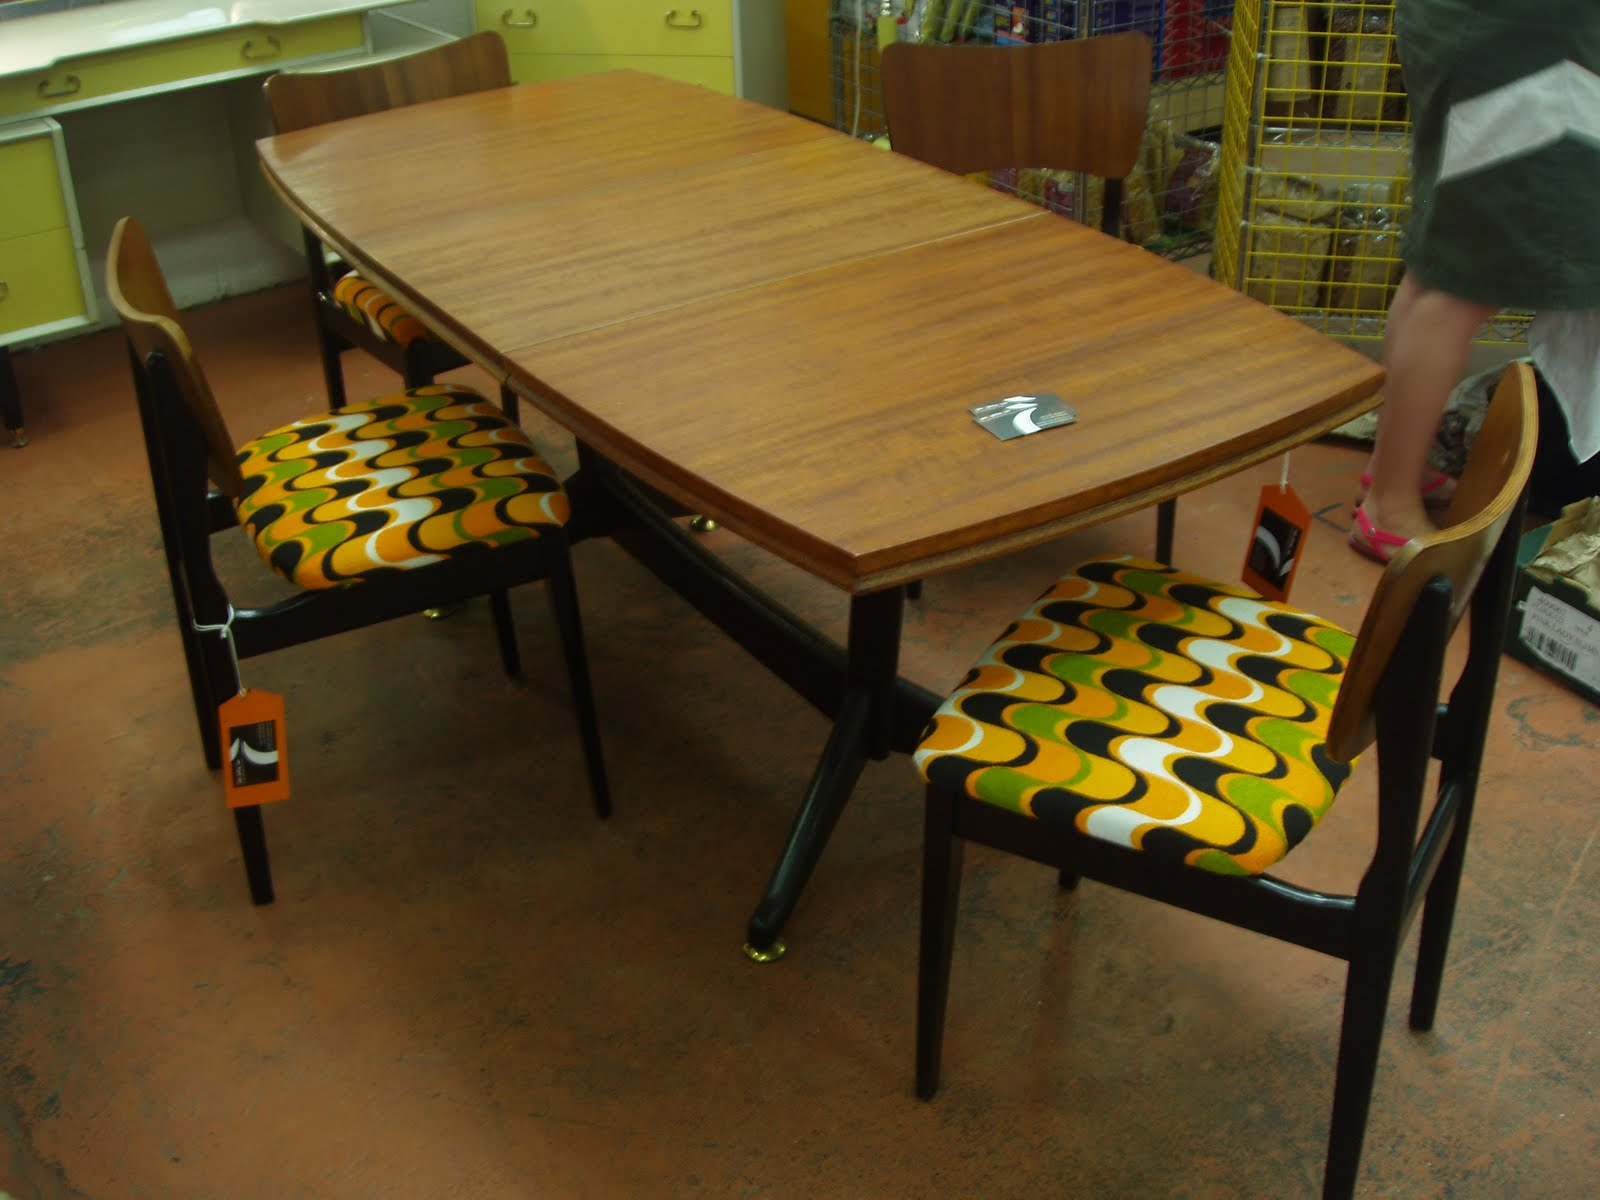 Vintage Formica Kitchen Table Icmt Set Vintage Formica Table For Kitchen And Dining Room